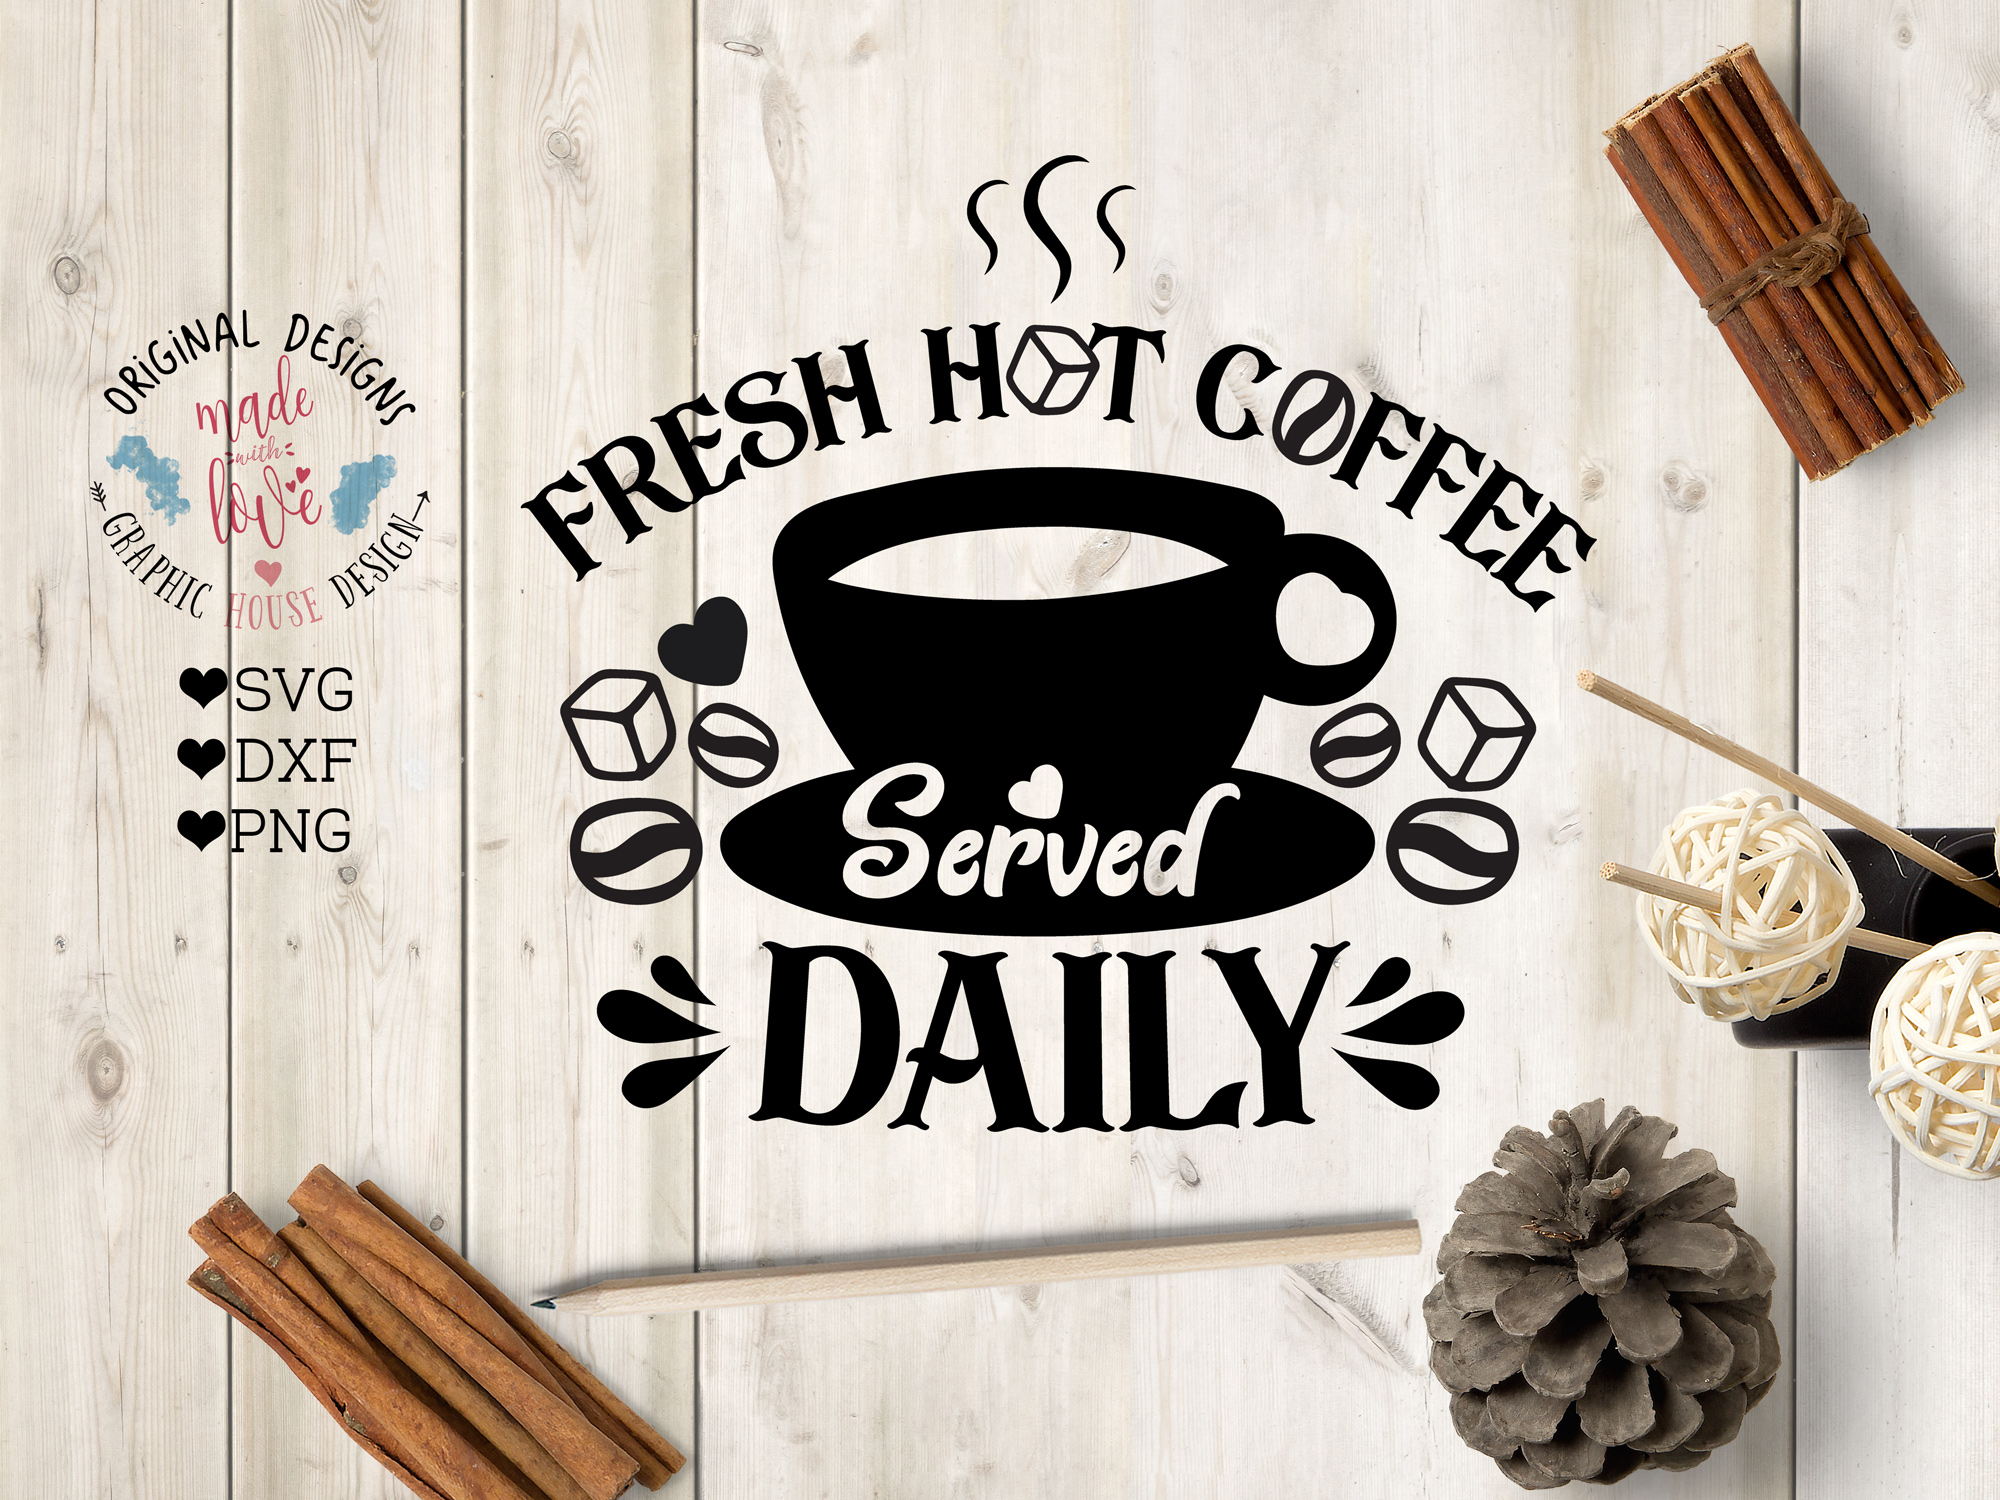 Fresh Hot Coffee Served Daily Cut File SVG, DXF, PNG example image 1